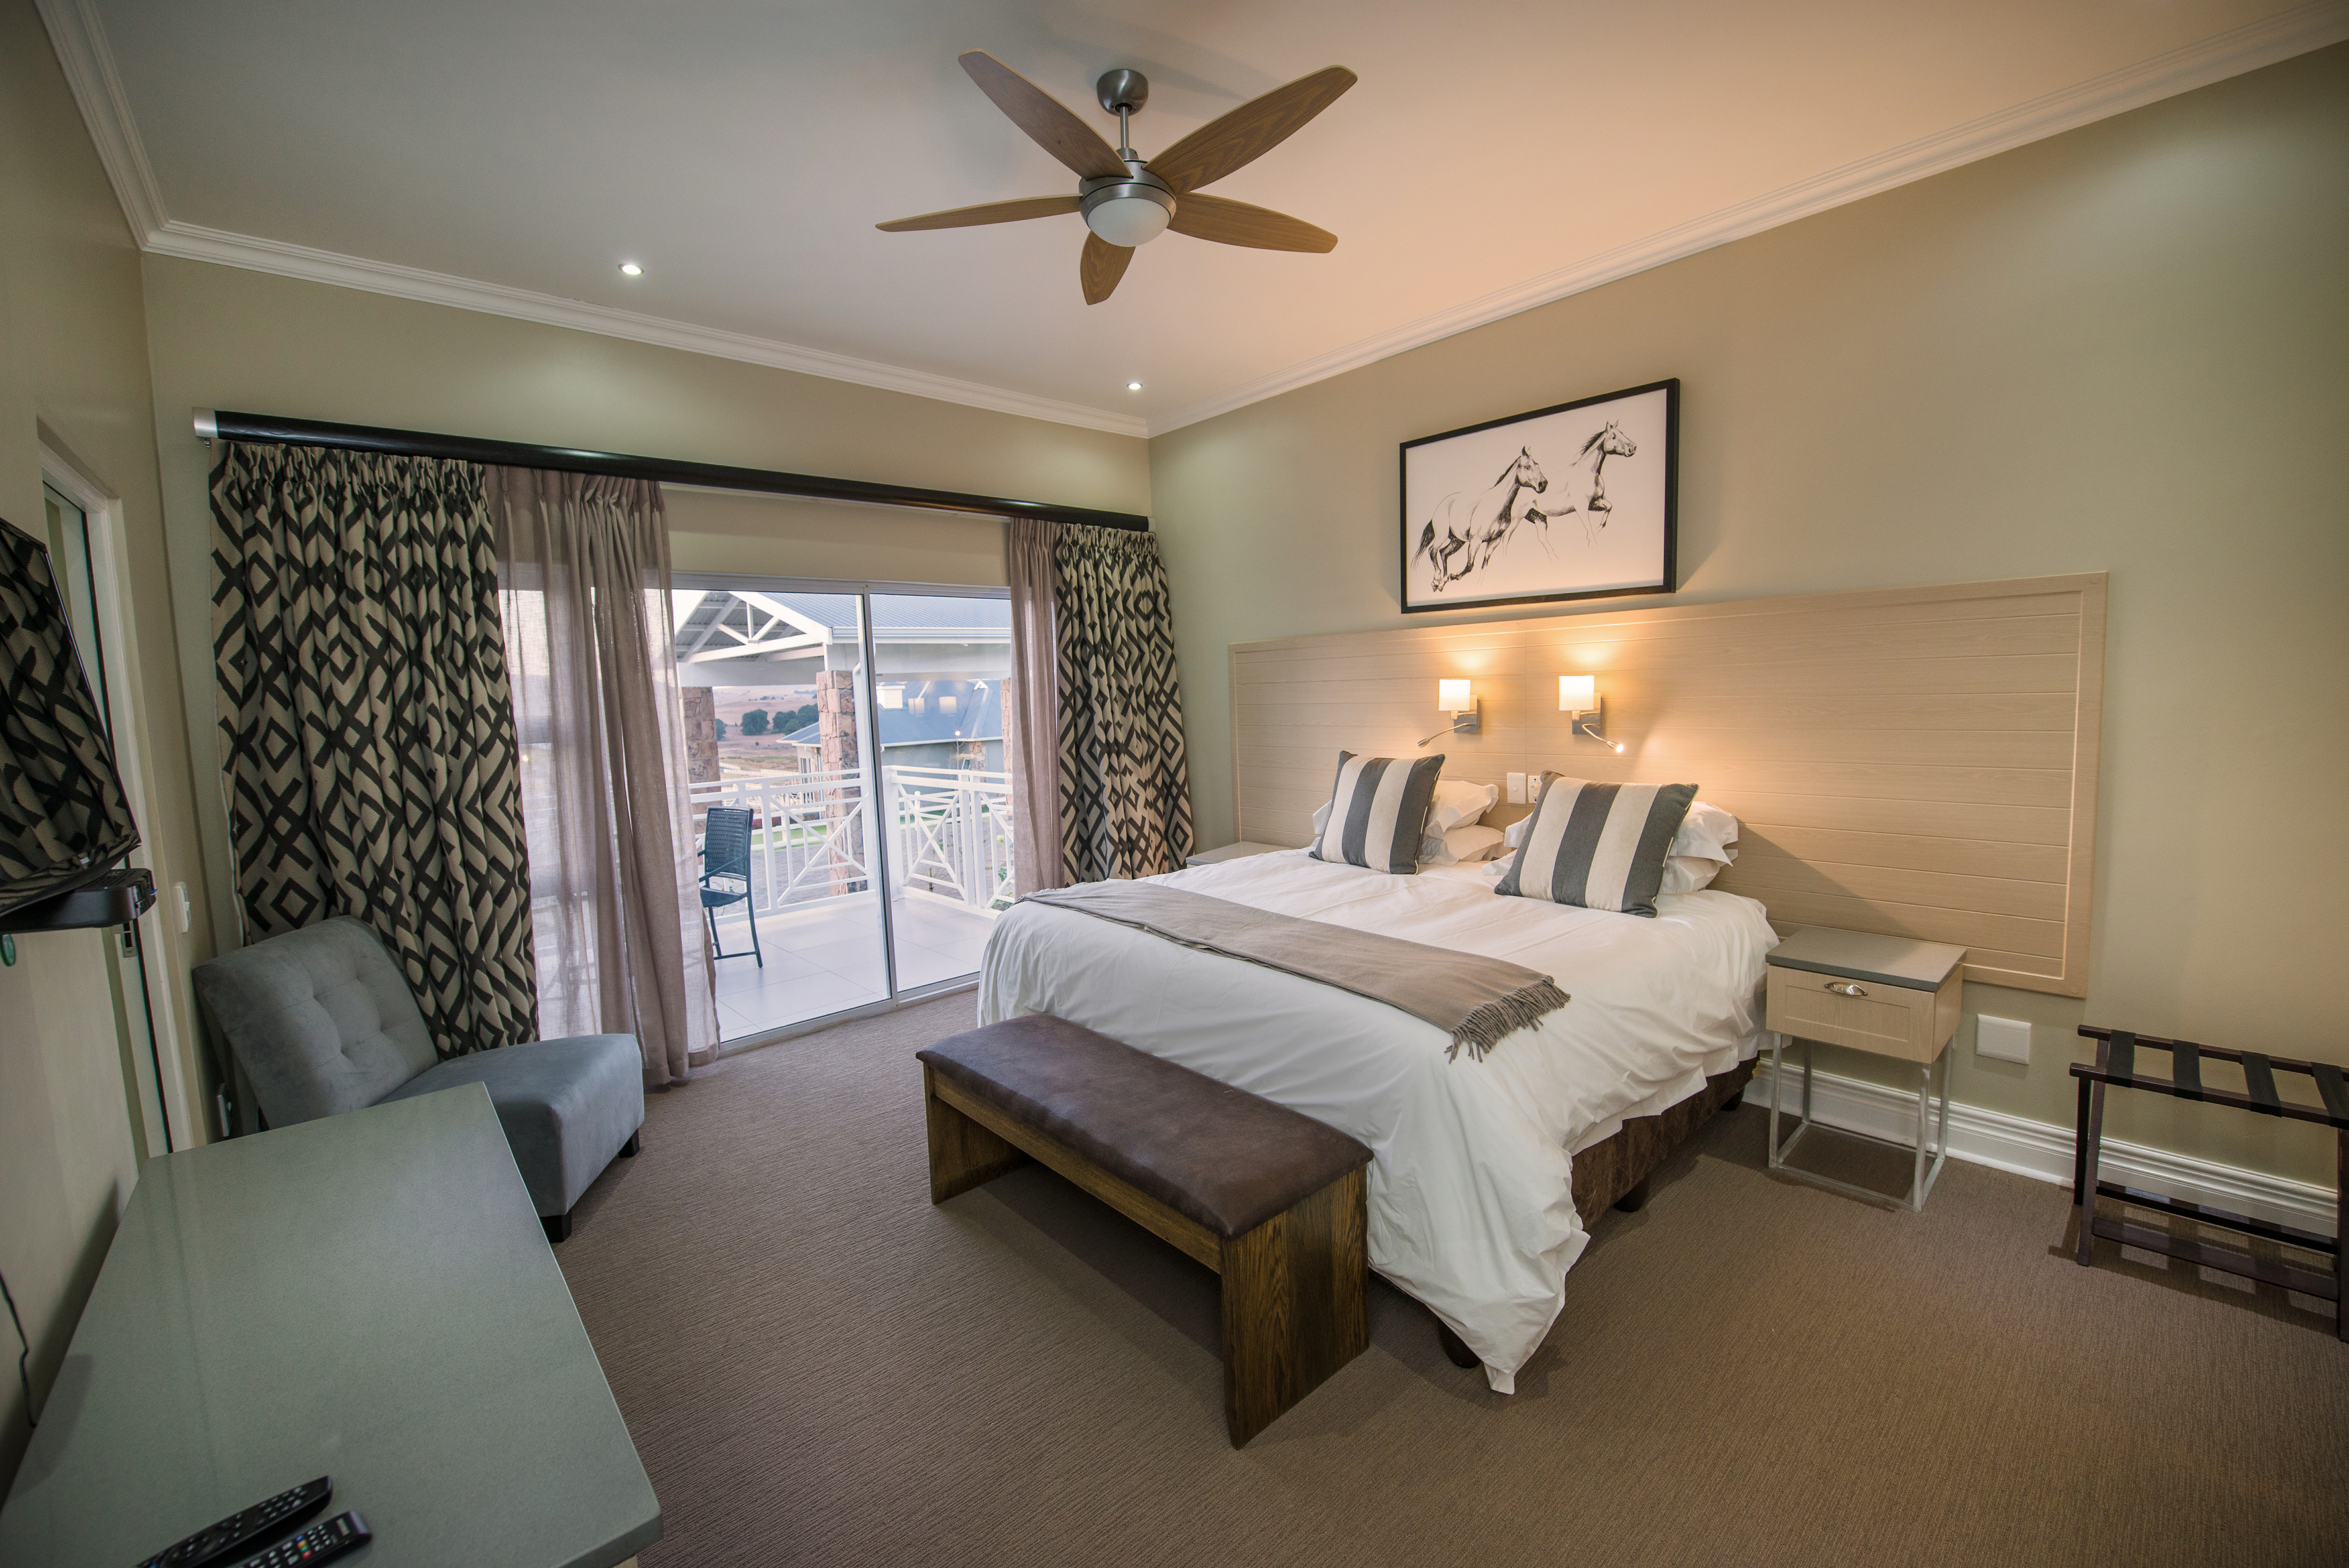 Enjoy time away from it one of our Luxury Lodge Rooms